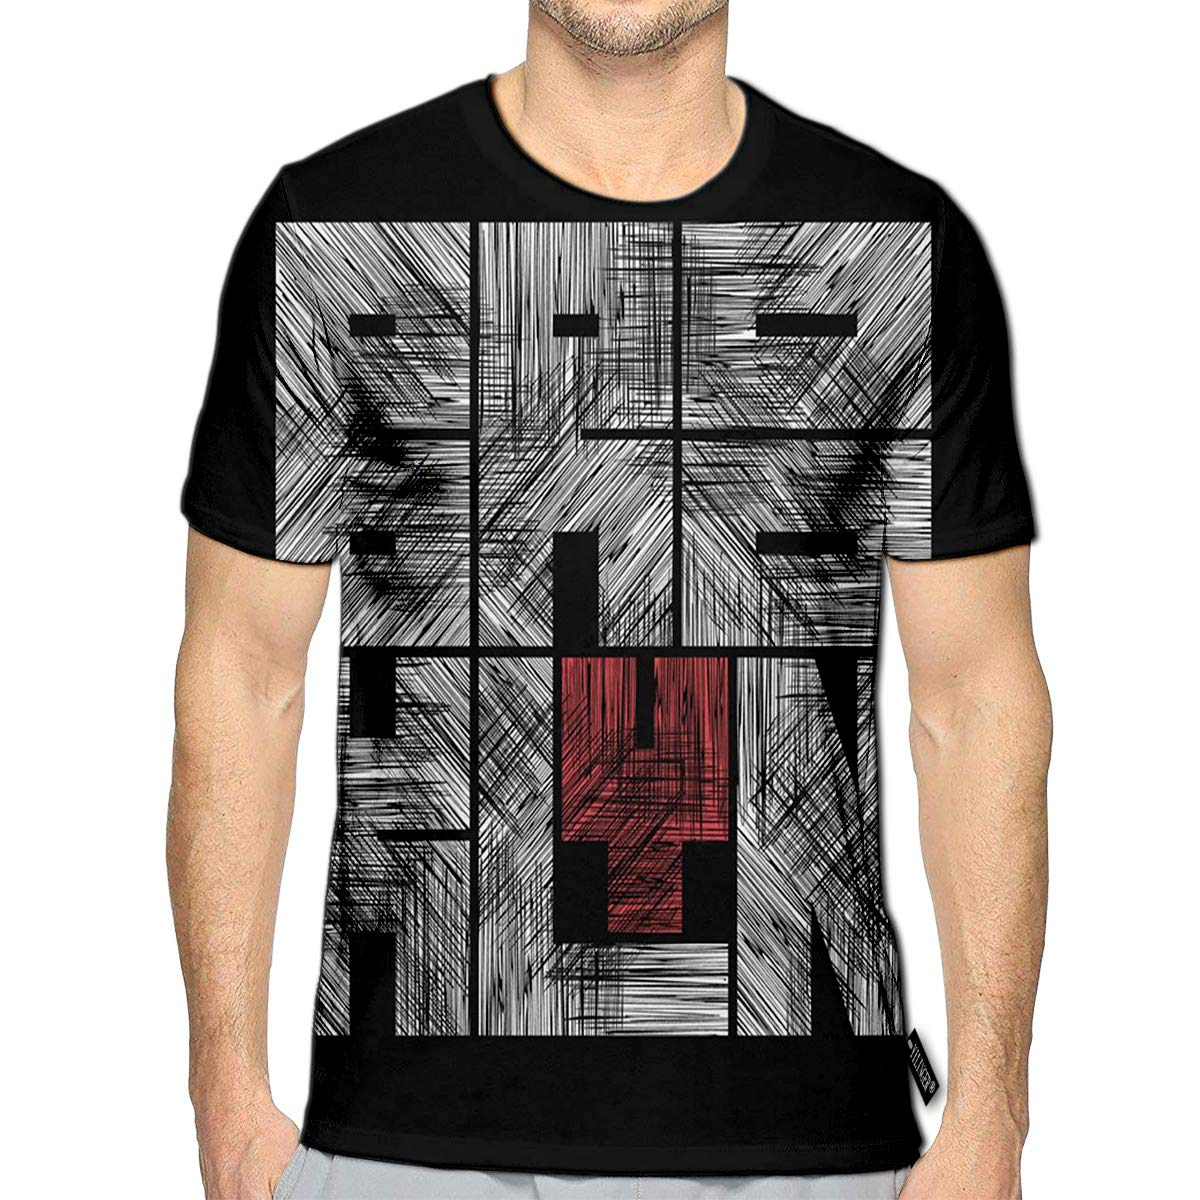 3D Printed T-Shirts Brooklyn Grunge Style Vintage Concept Short Sleeve Tops Tees